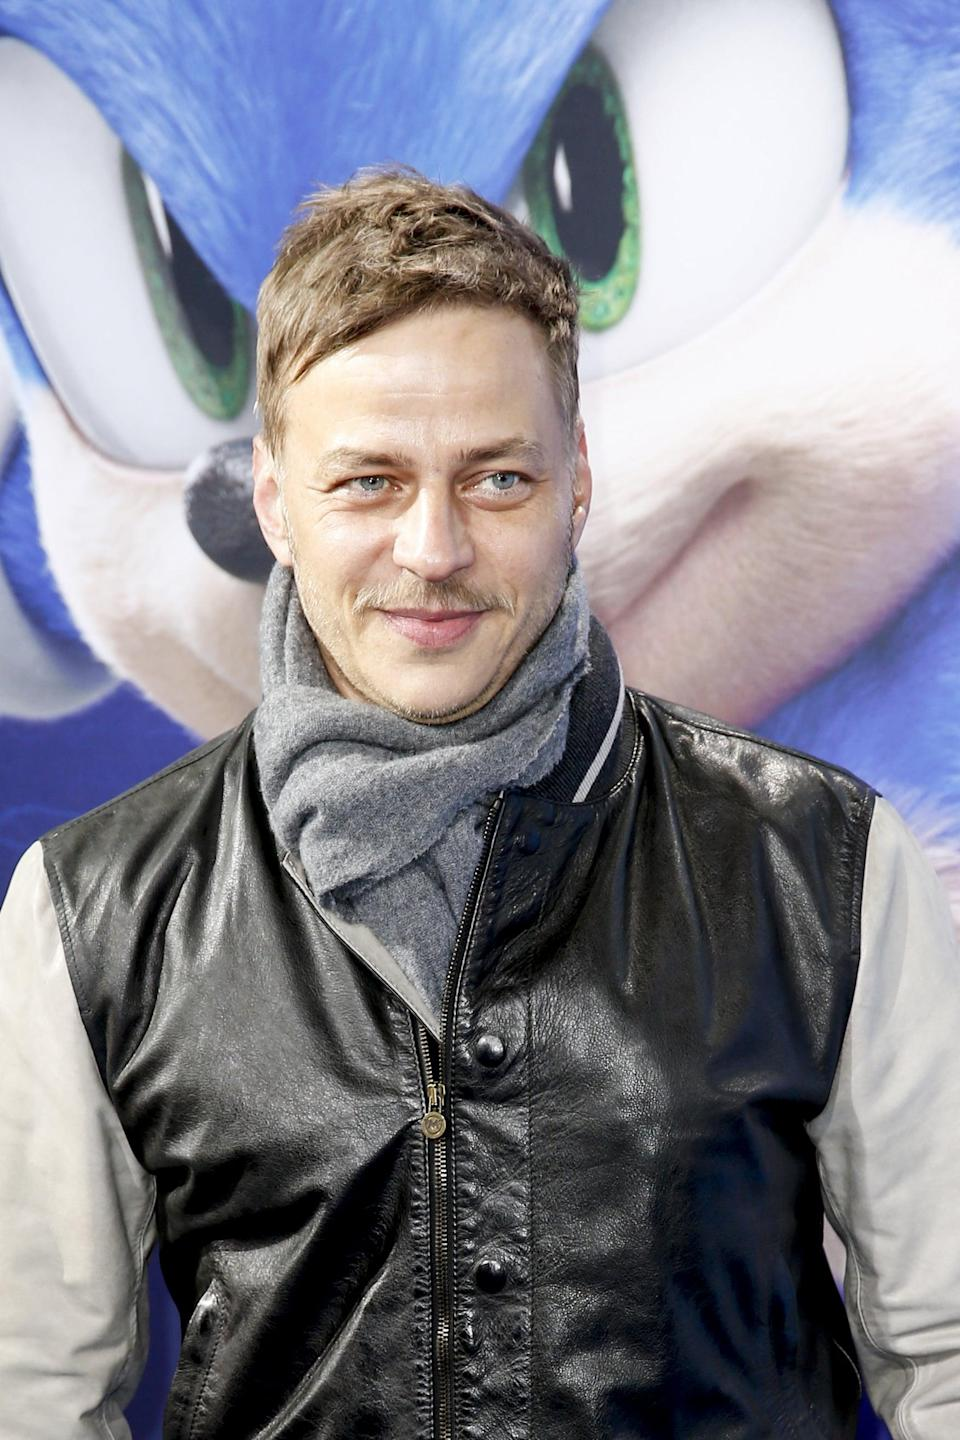 <p>German actor Wlaschiha joins the cast as Dmitri, a prison guard in Russia who befriends - you guessed it - Hopper. He's clever and charming, but whether or not he can be trusted remains to be seen. Wlaschiha is best known so far for playing assassin Jaqen H'ghar on <strong>Game of Thrones</strong>.</p>